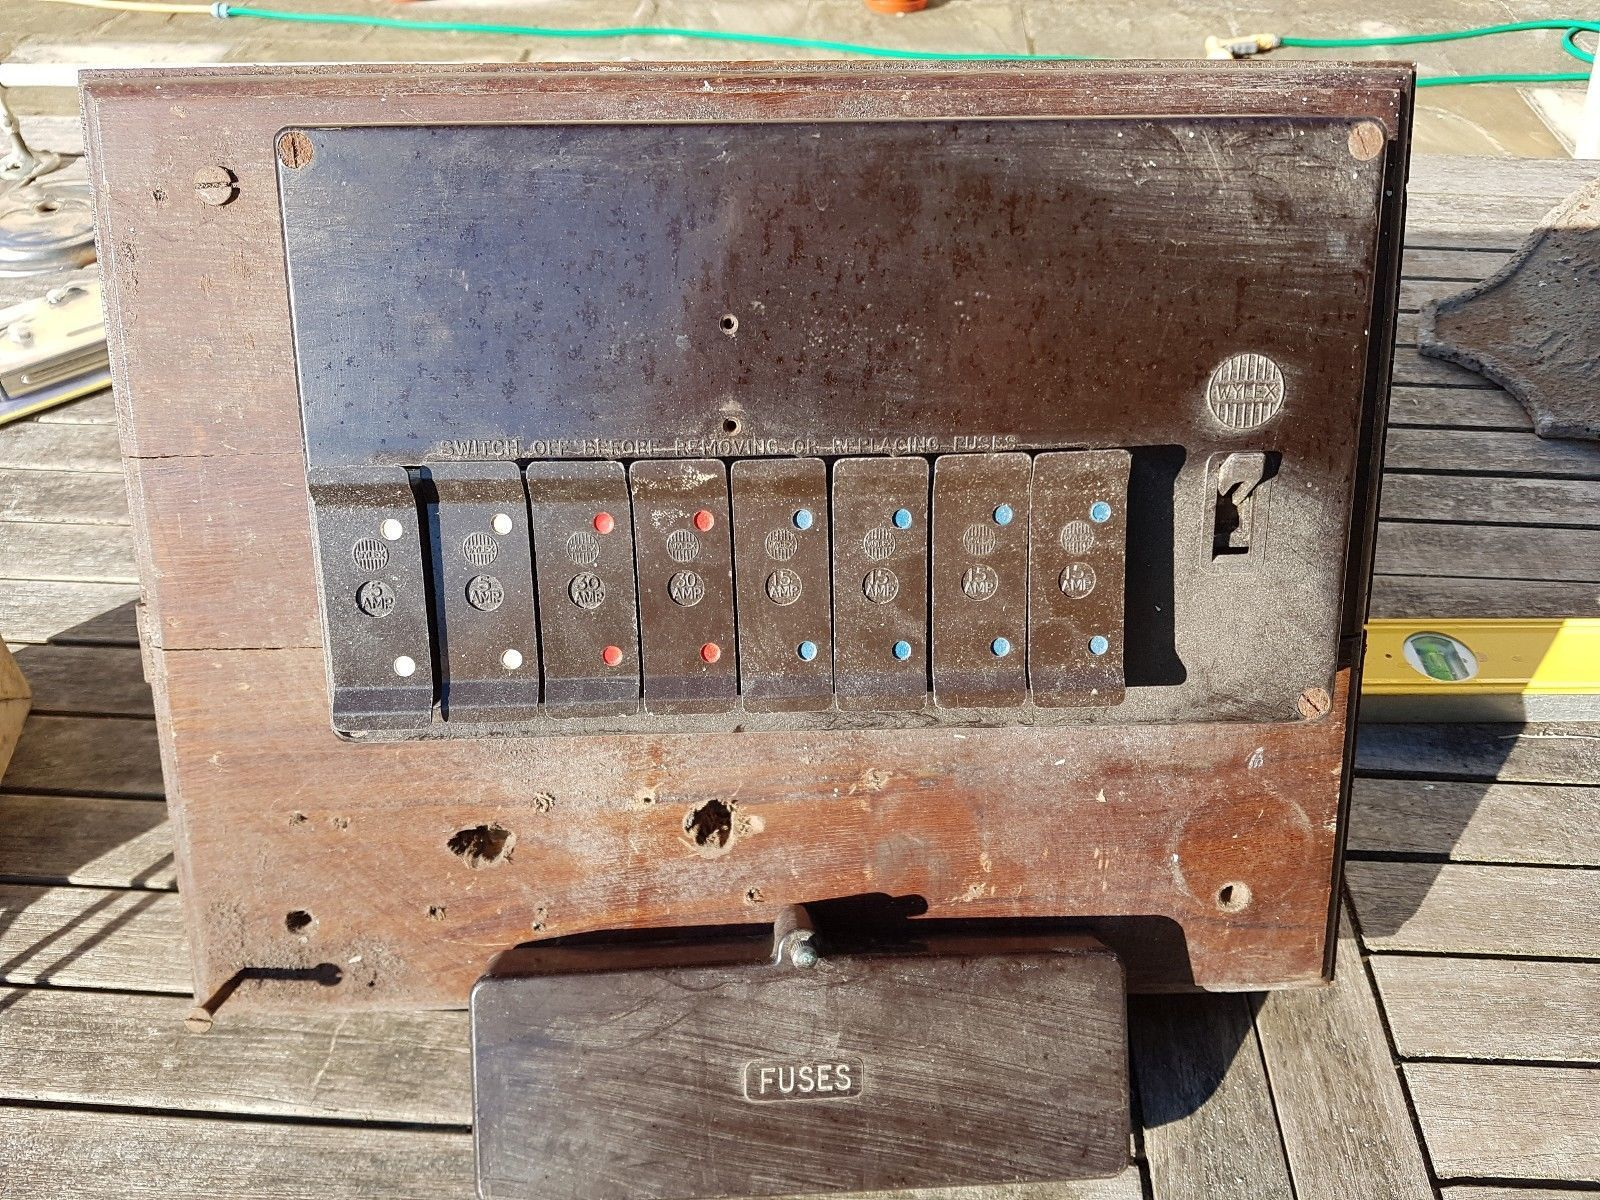 wylex bakelite fuse box old fuse box with ceramic breakers bakelite switch ebay [ 1600 x 1200 Pixel ]